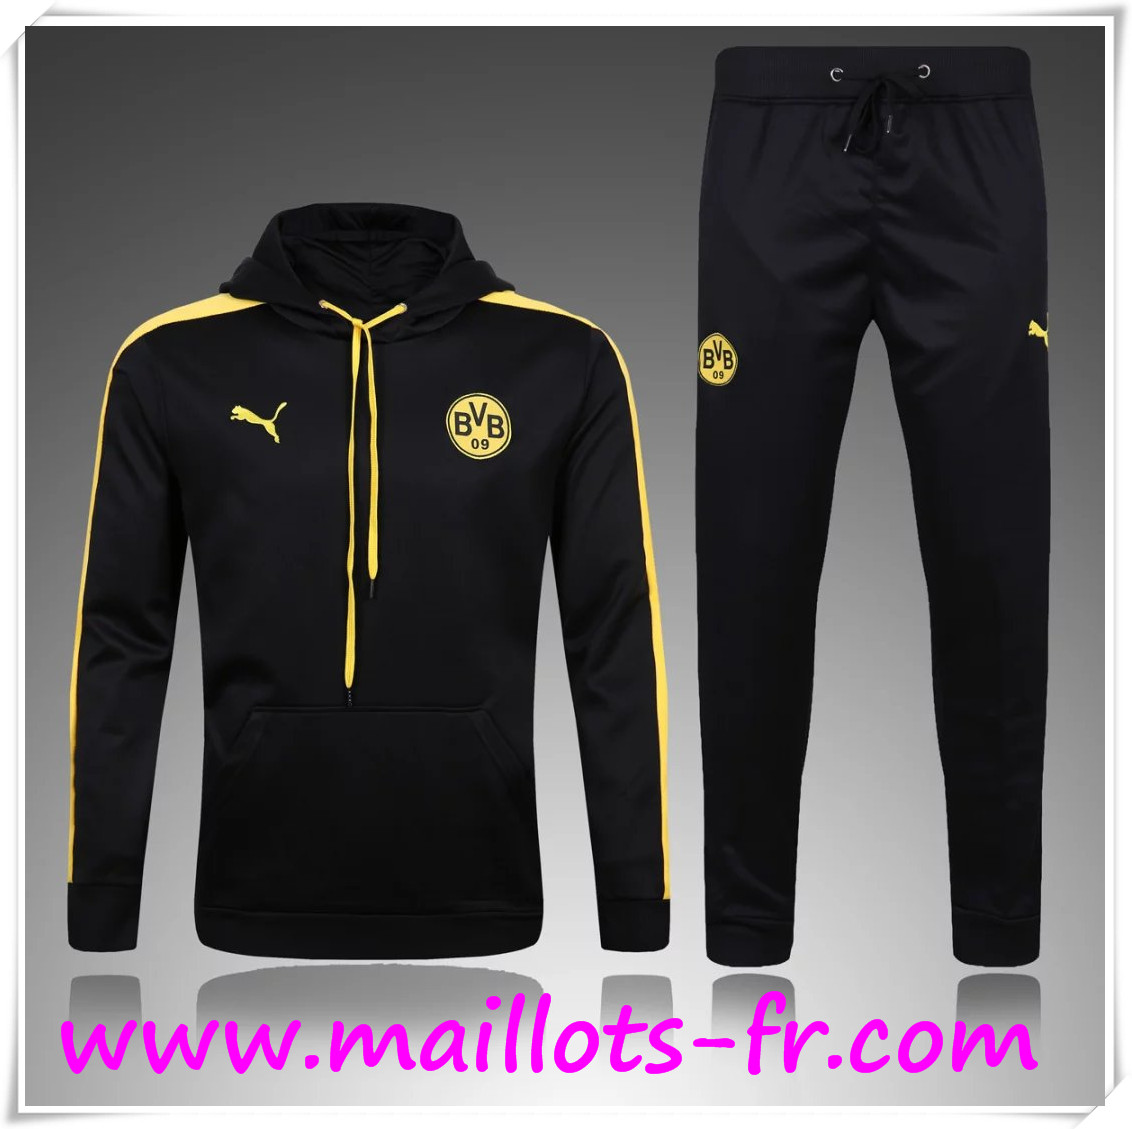 maillots-fr Sweat Capuche Survetement Dortmund BVB Noir 2016 2017 Ensemble